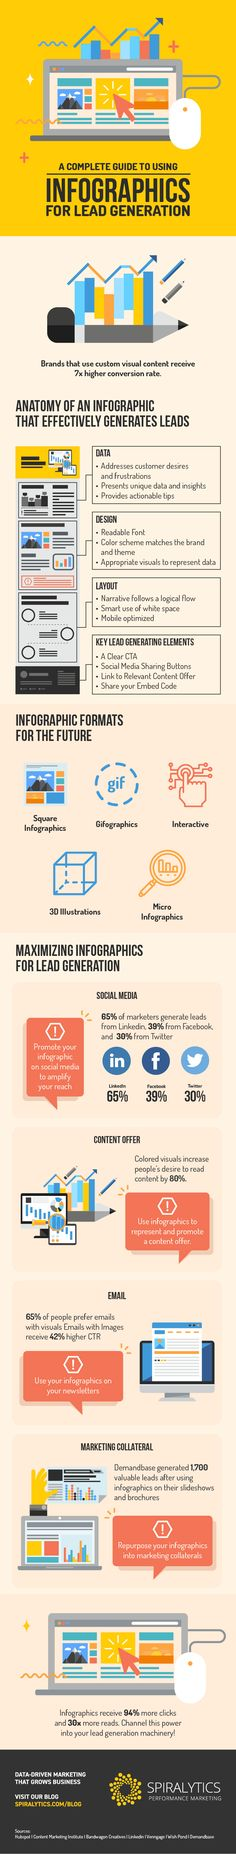 For a more detailed look at how to use infographics for lead generation, check out this amazing infographic. Content Marketing, Digital Marketing, Inbound Marketing, Email Marketing, Visual Metaphor, Social Share Buttons, Social Media Engagement, How To Create Infographics, Infographics Design